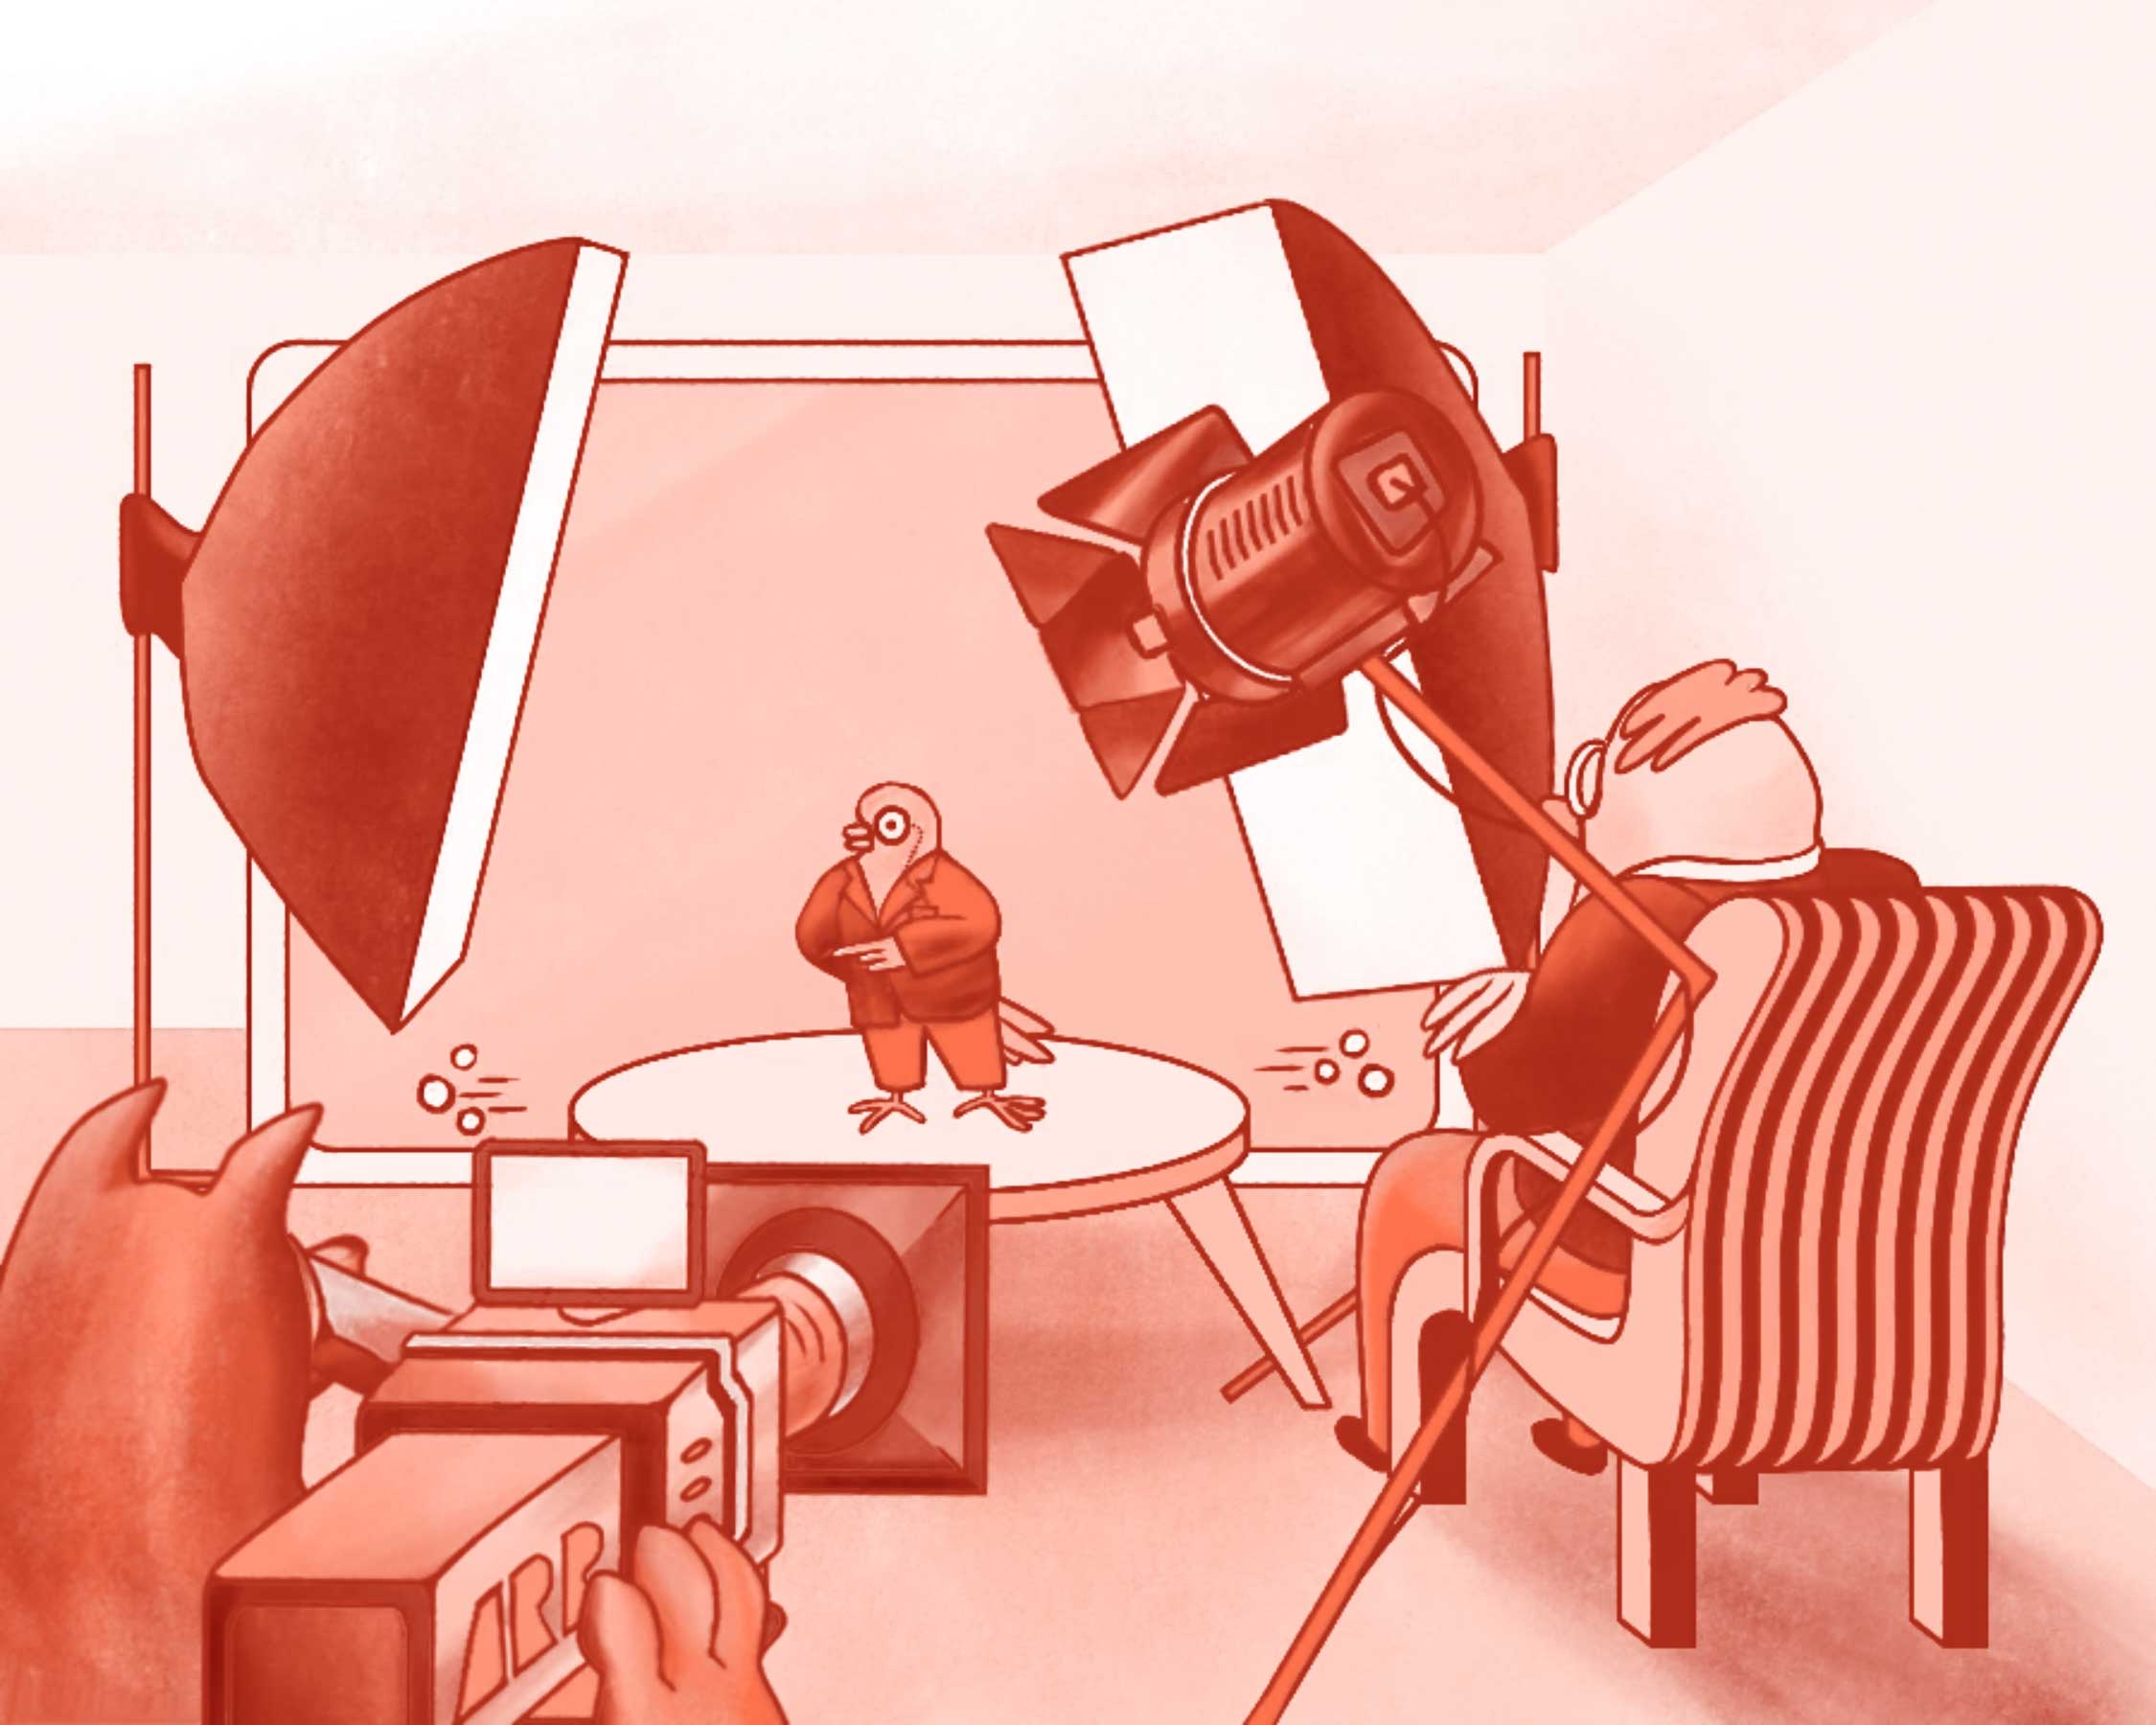 Commercials & Promos - One thing we know for sure is Advertising Works! If you're ready to roll out a video advertising campaign, let us guide you through this sometimes complex process and make it as easy for you as possible. We can help you develop on-brand creative content or help you realise your own brief. We can also work with your existing advertising partner to help maximise your audience reach and customer engagement.